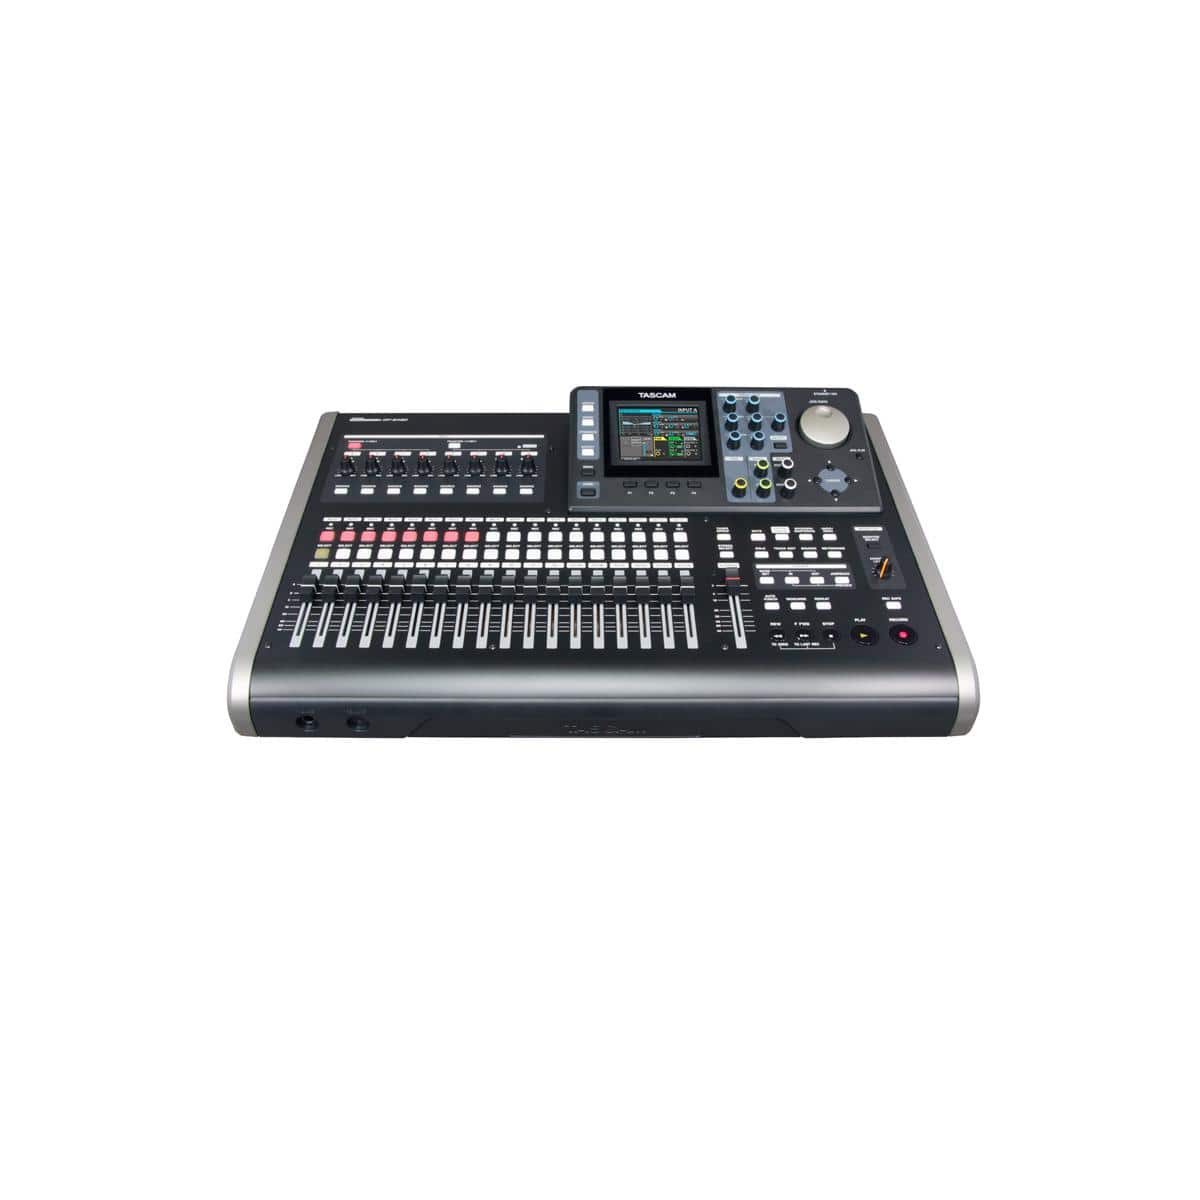 Tascam DP-24SD 24 Track Complete Digital Studio Recorder $330 + free shipping